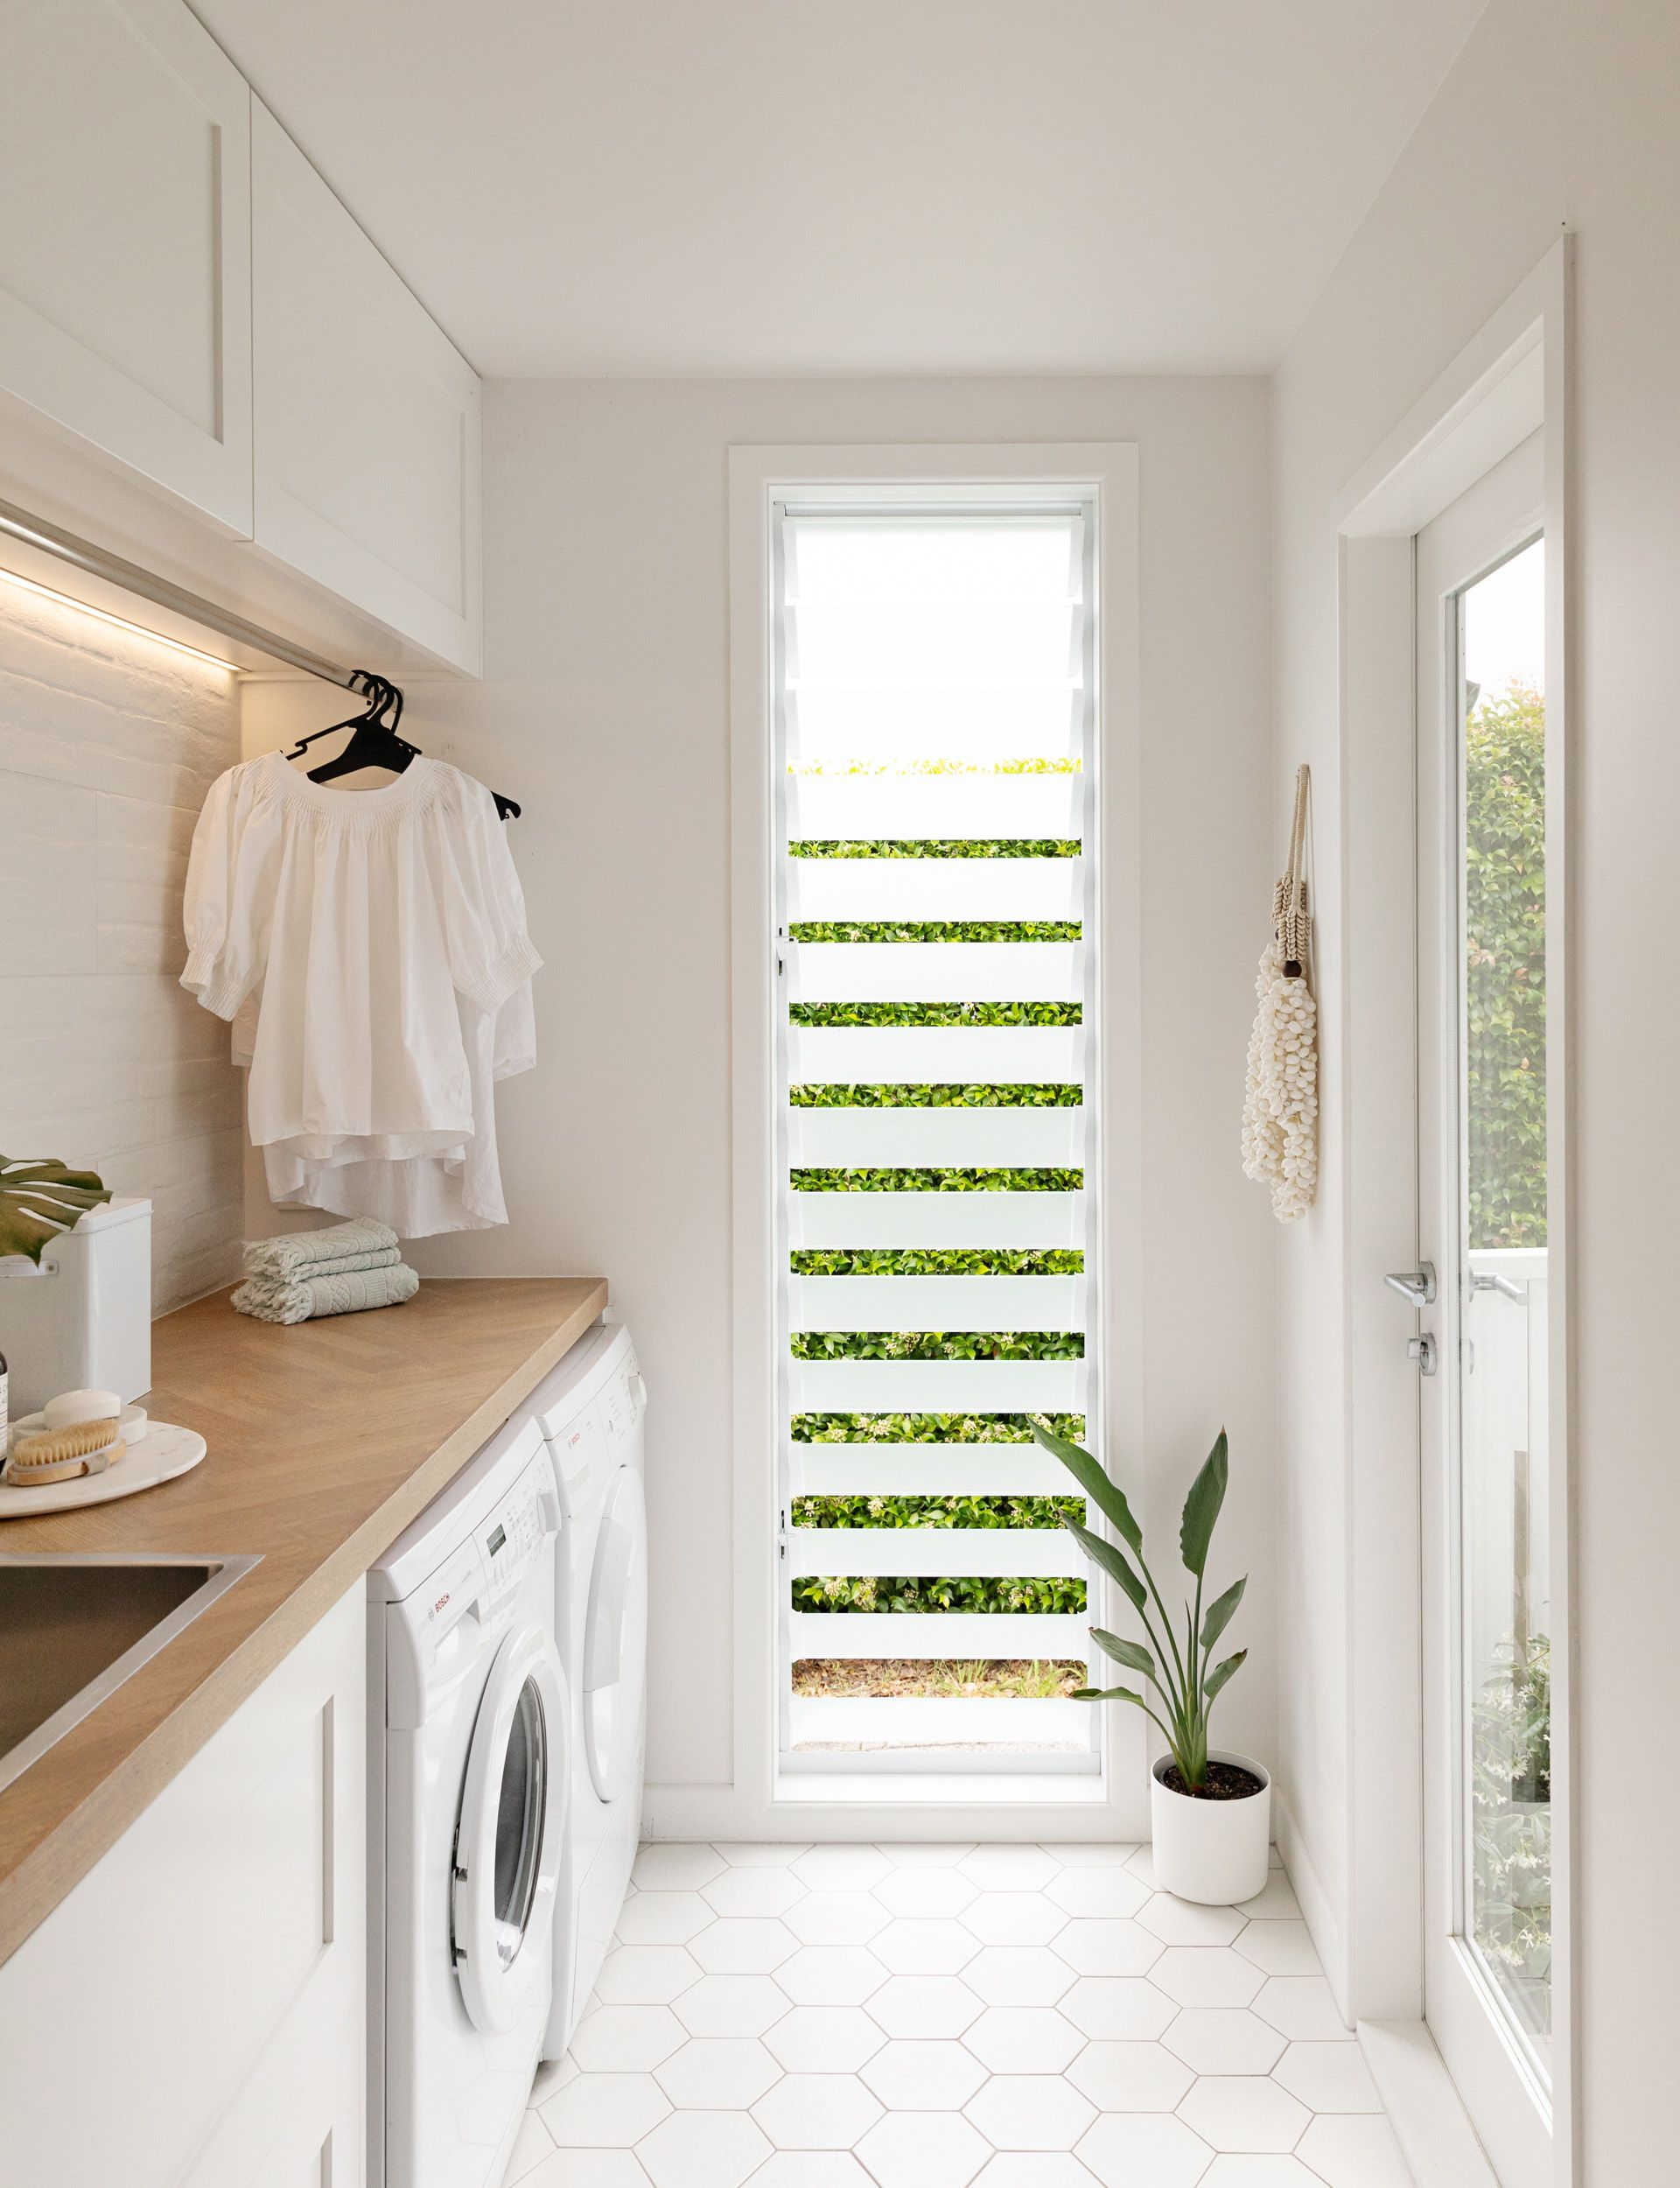 Use White Color for Spacious Impression